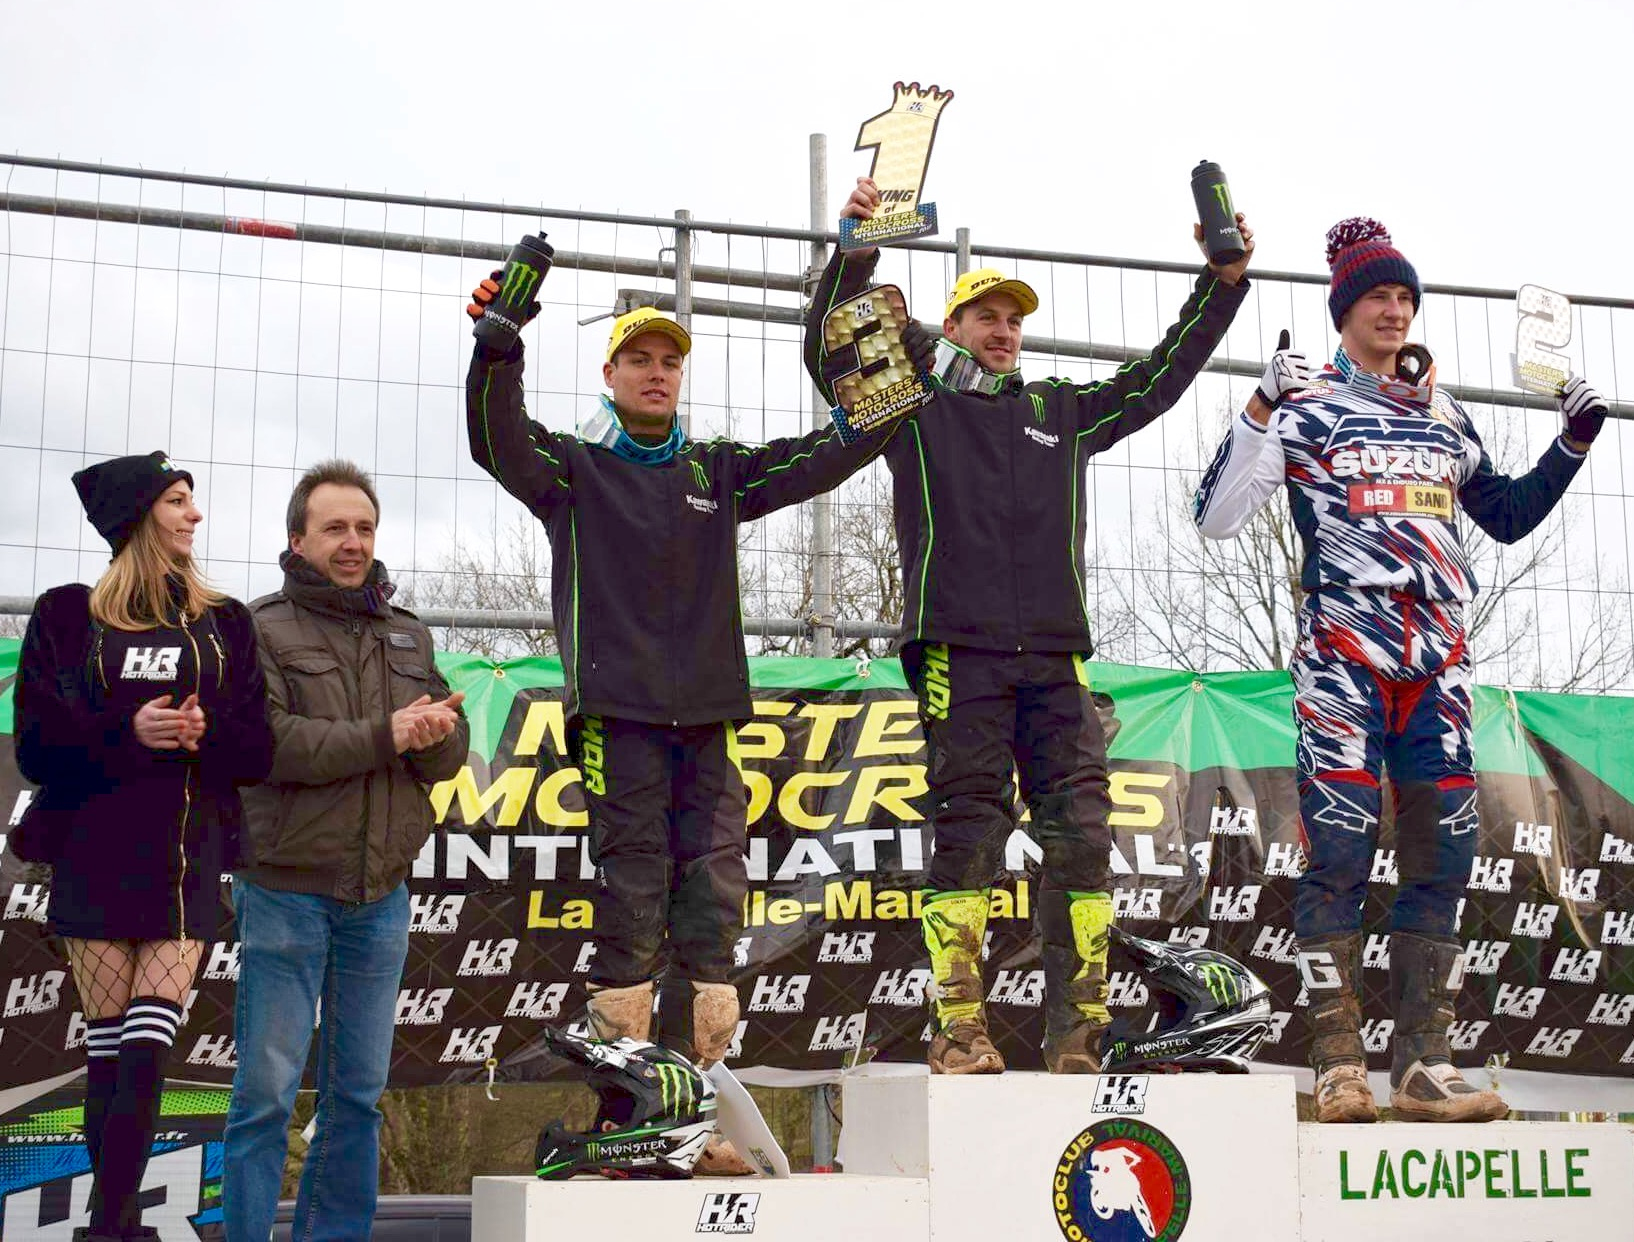 Podium superfinale Lacapelle